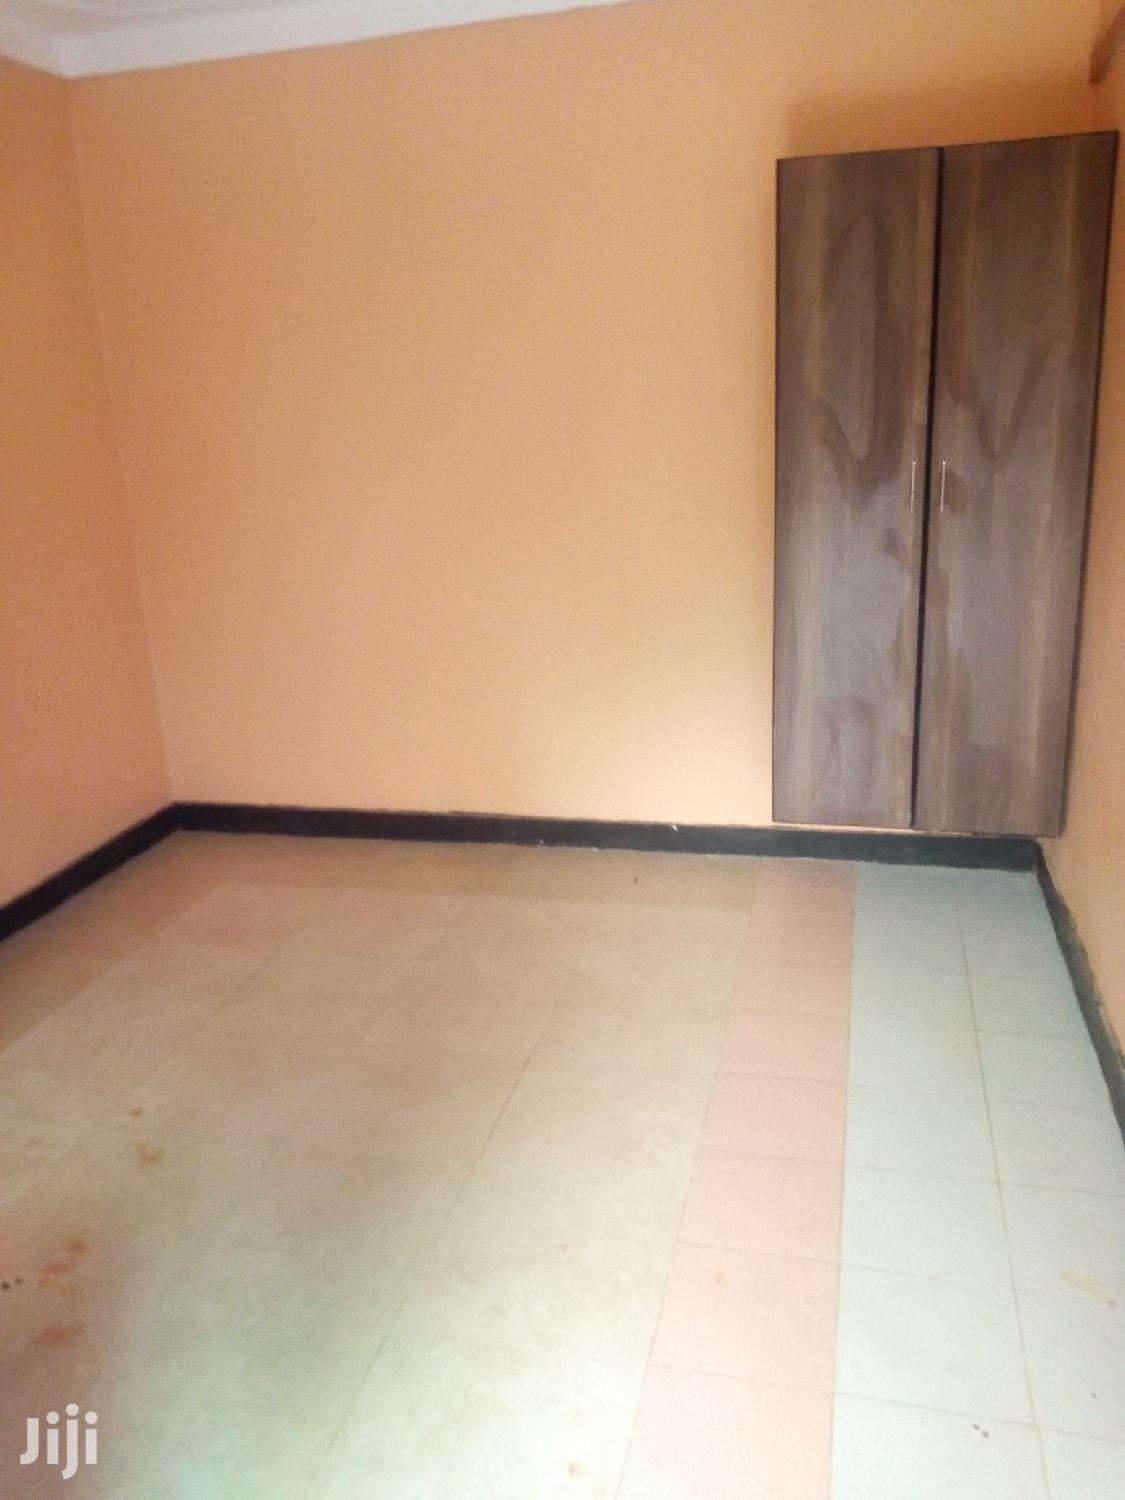 Namugongo Brand New Single Room Self Contained For Rent | Houses & Apartments For Rent for sale in Kampala, Central Region, Uganda